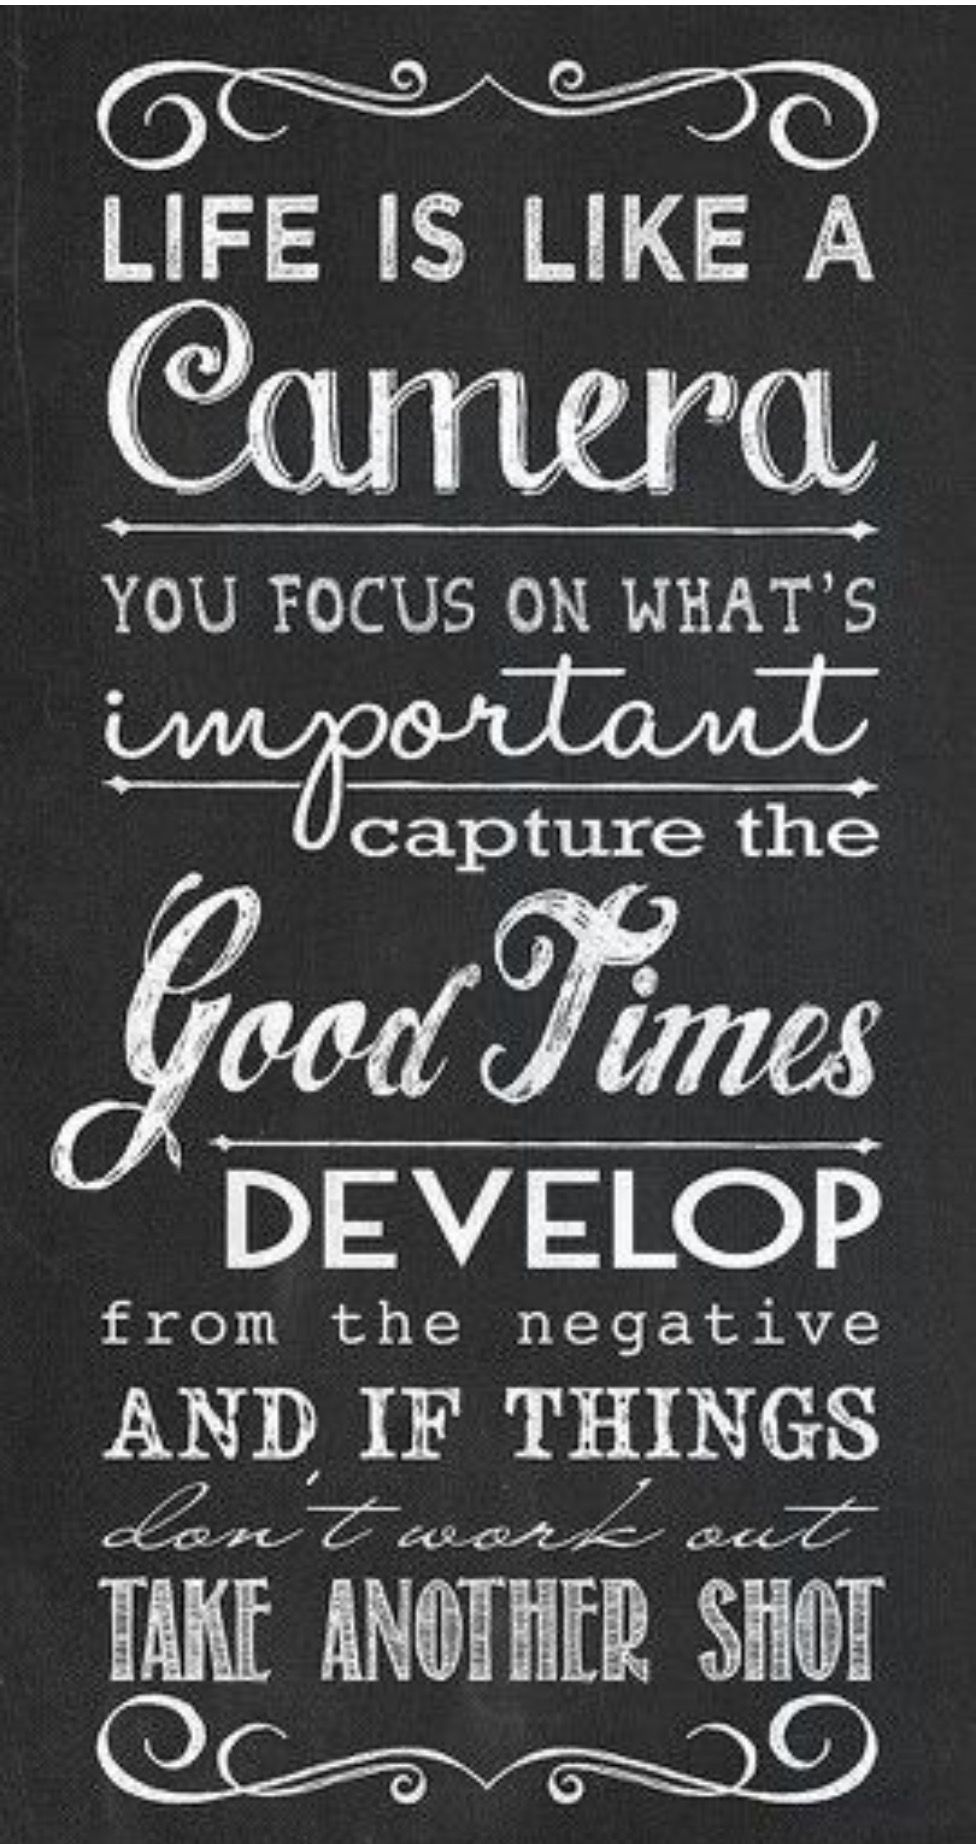 Life is like a camera. You focus on what's important